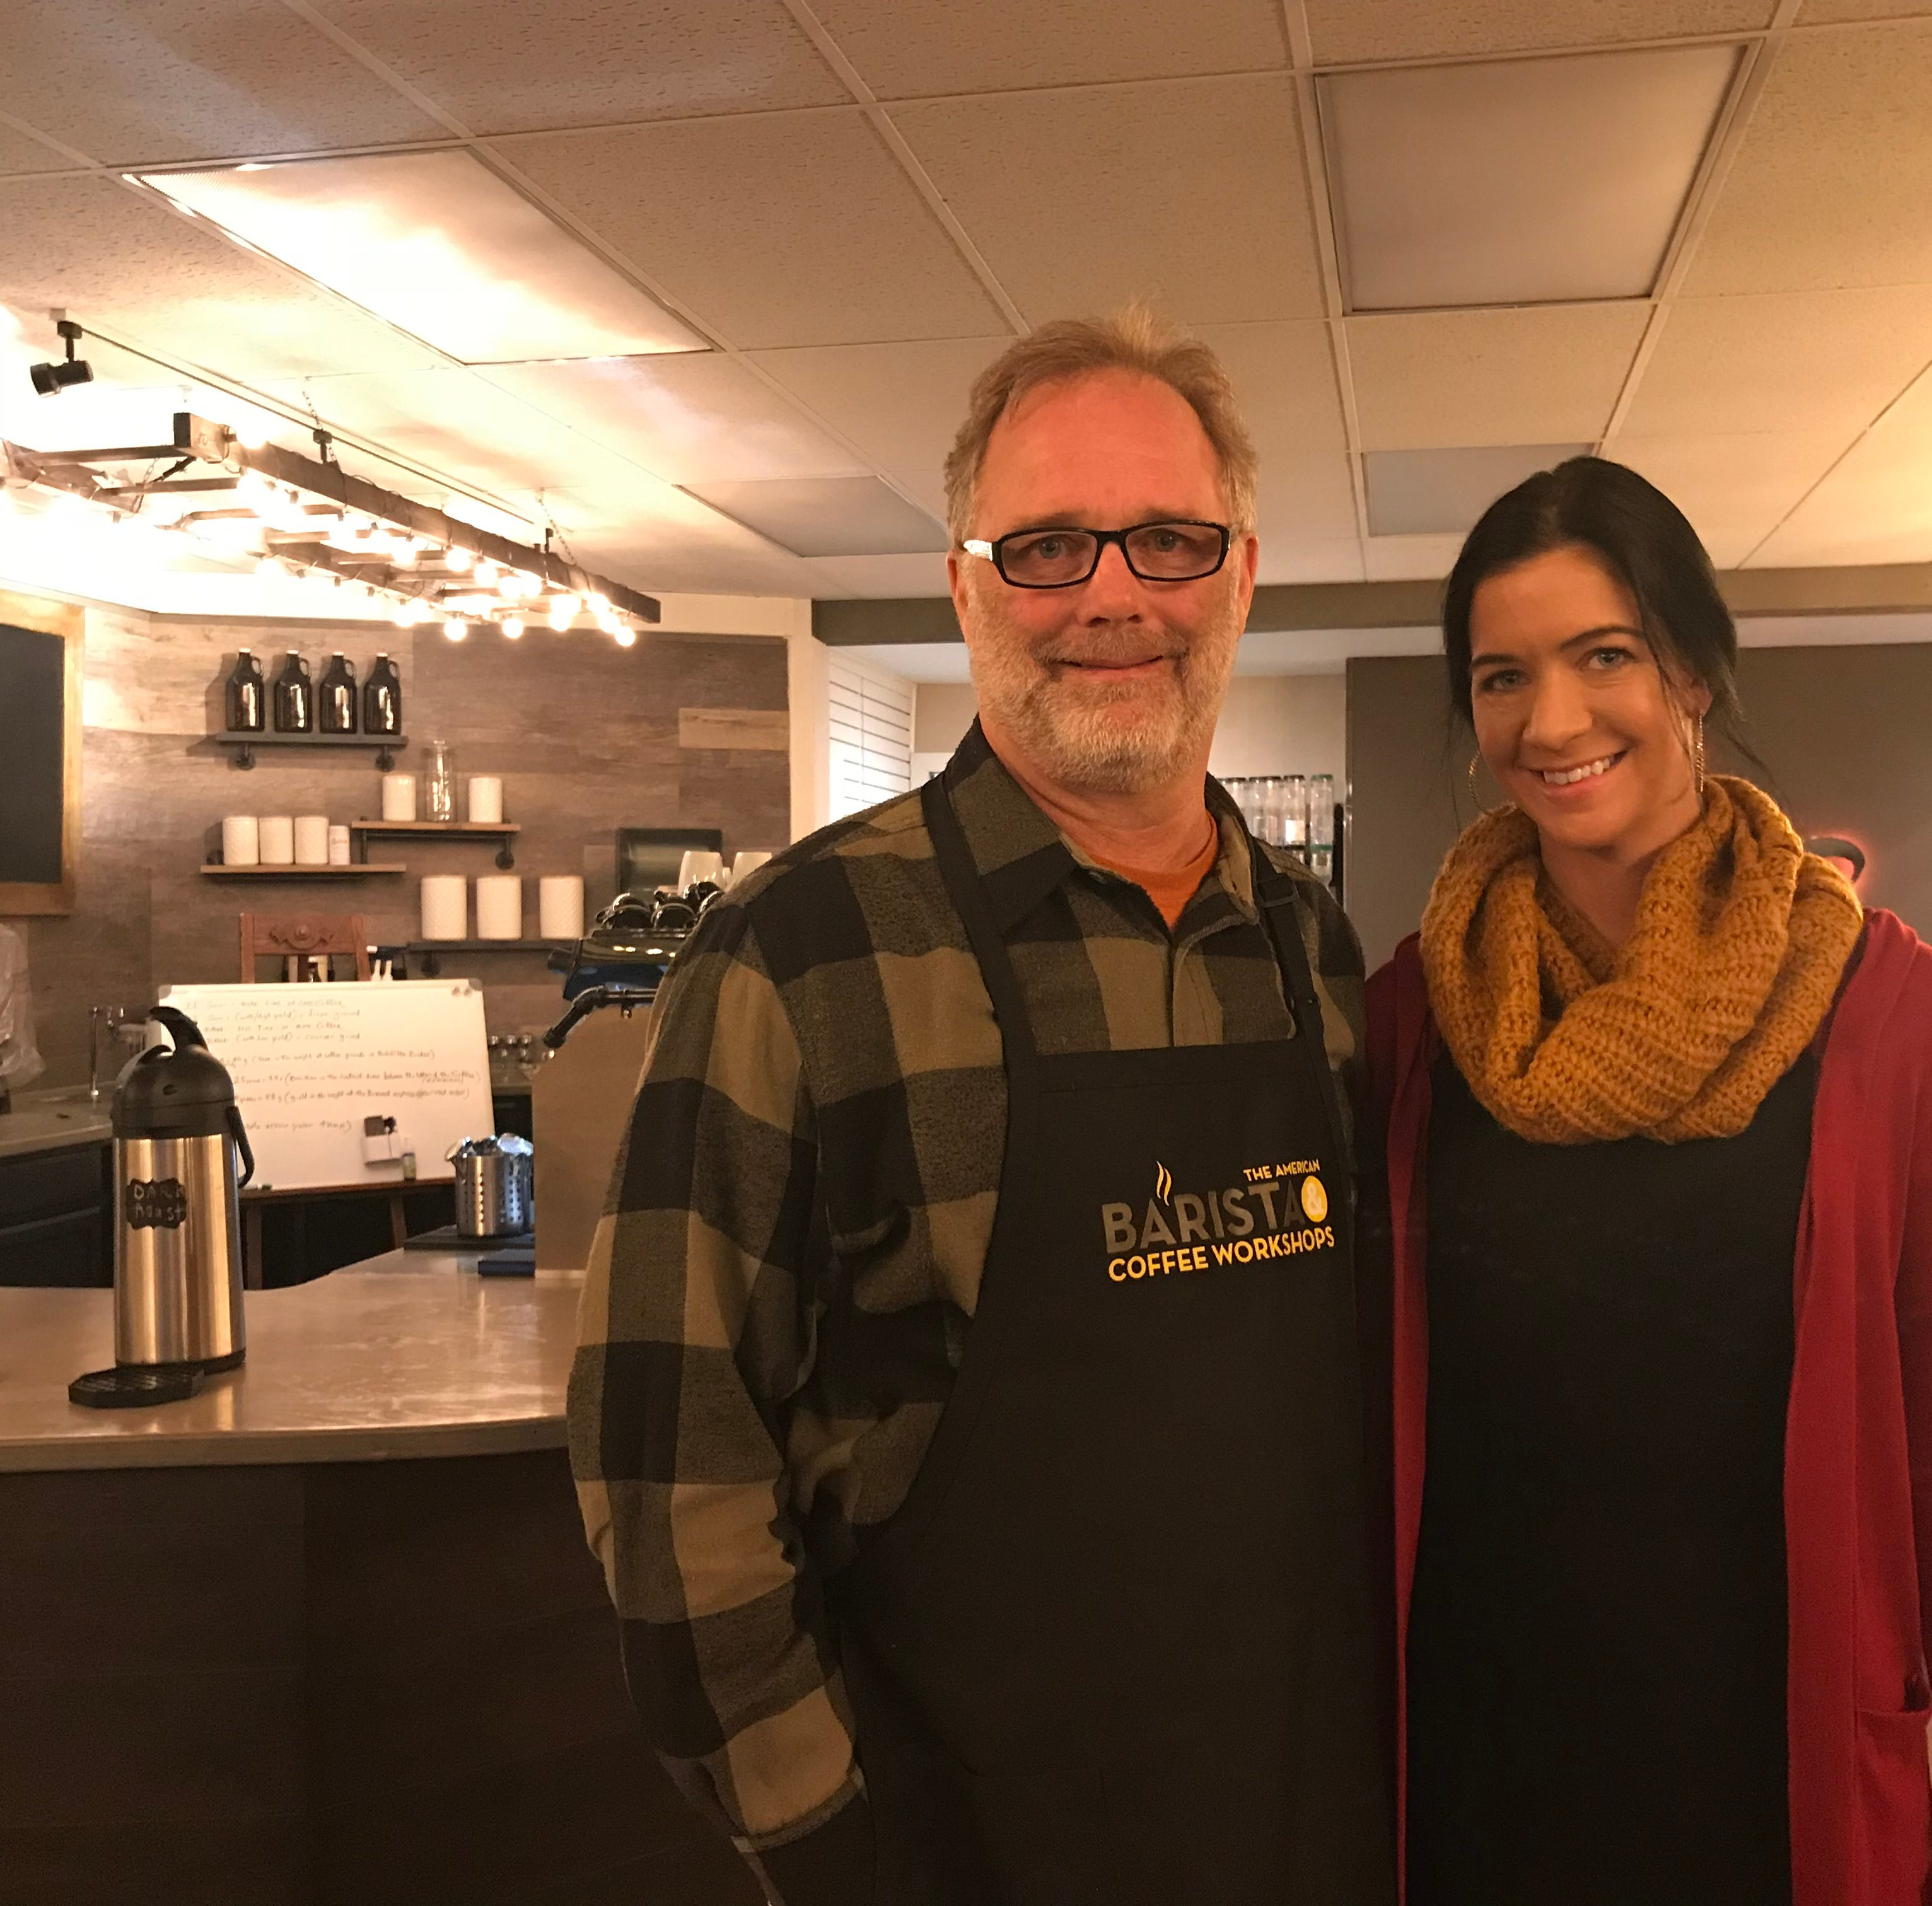 Clairmont's Coffee, Clinton County's first Cops & Doughnuts retailer, opens Tuesday